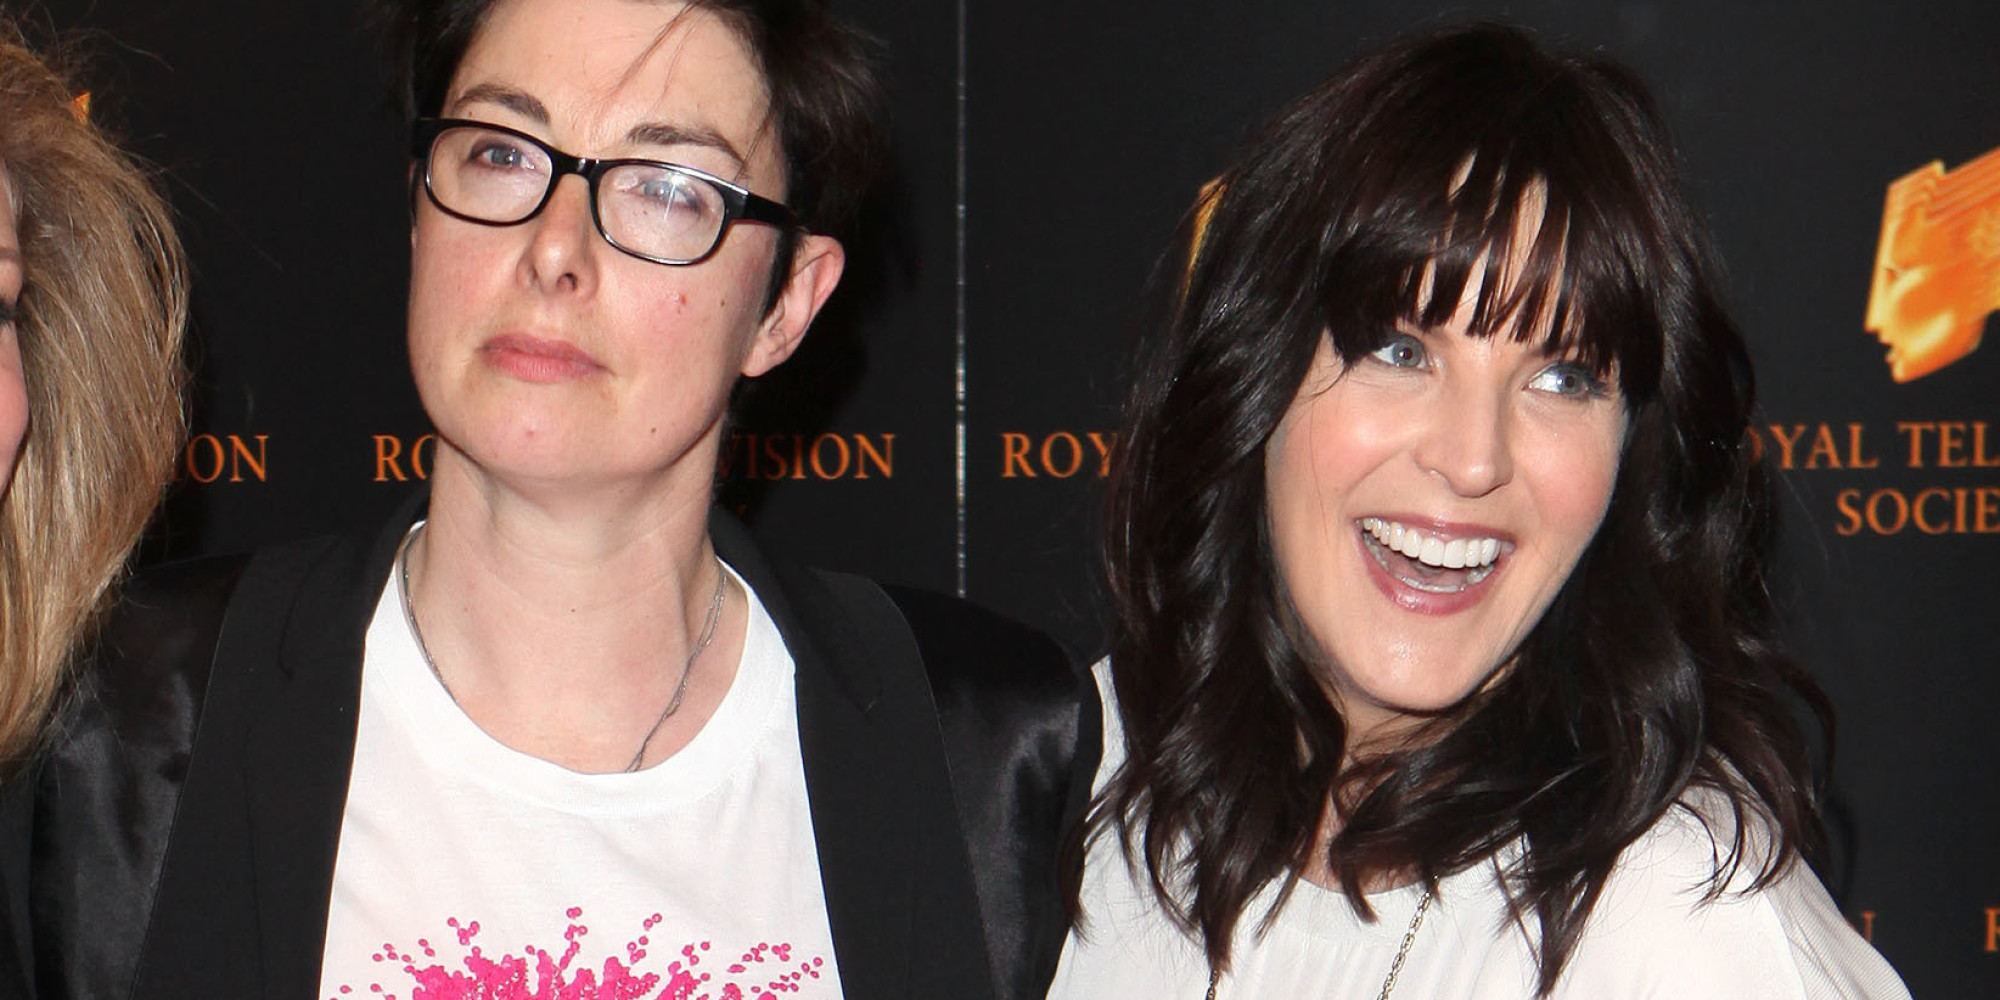 ryder lesbian dating site The internet is losing its mind over winona ryder's response to a former bully  that asked  i know i'm the only lesbian/human person that isn't watching  stranger things but,  11 dating struggles only trans lesbians will understand   use of this website is subject to our terms of use and privacy policy.